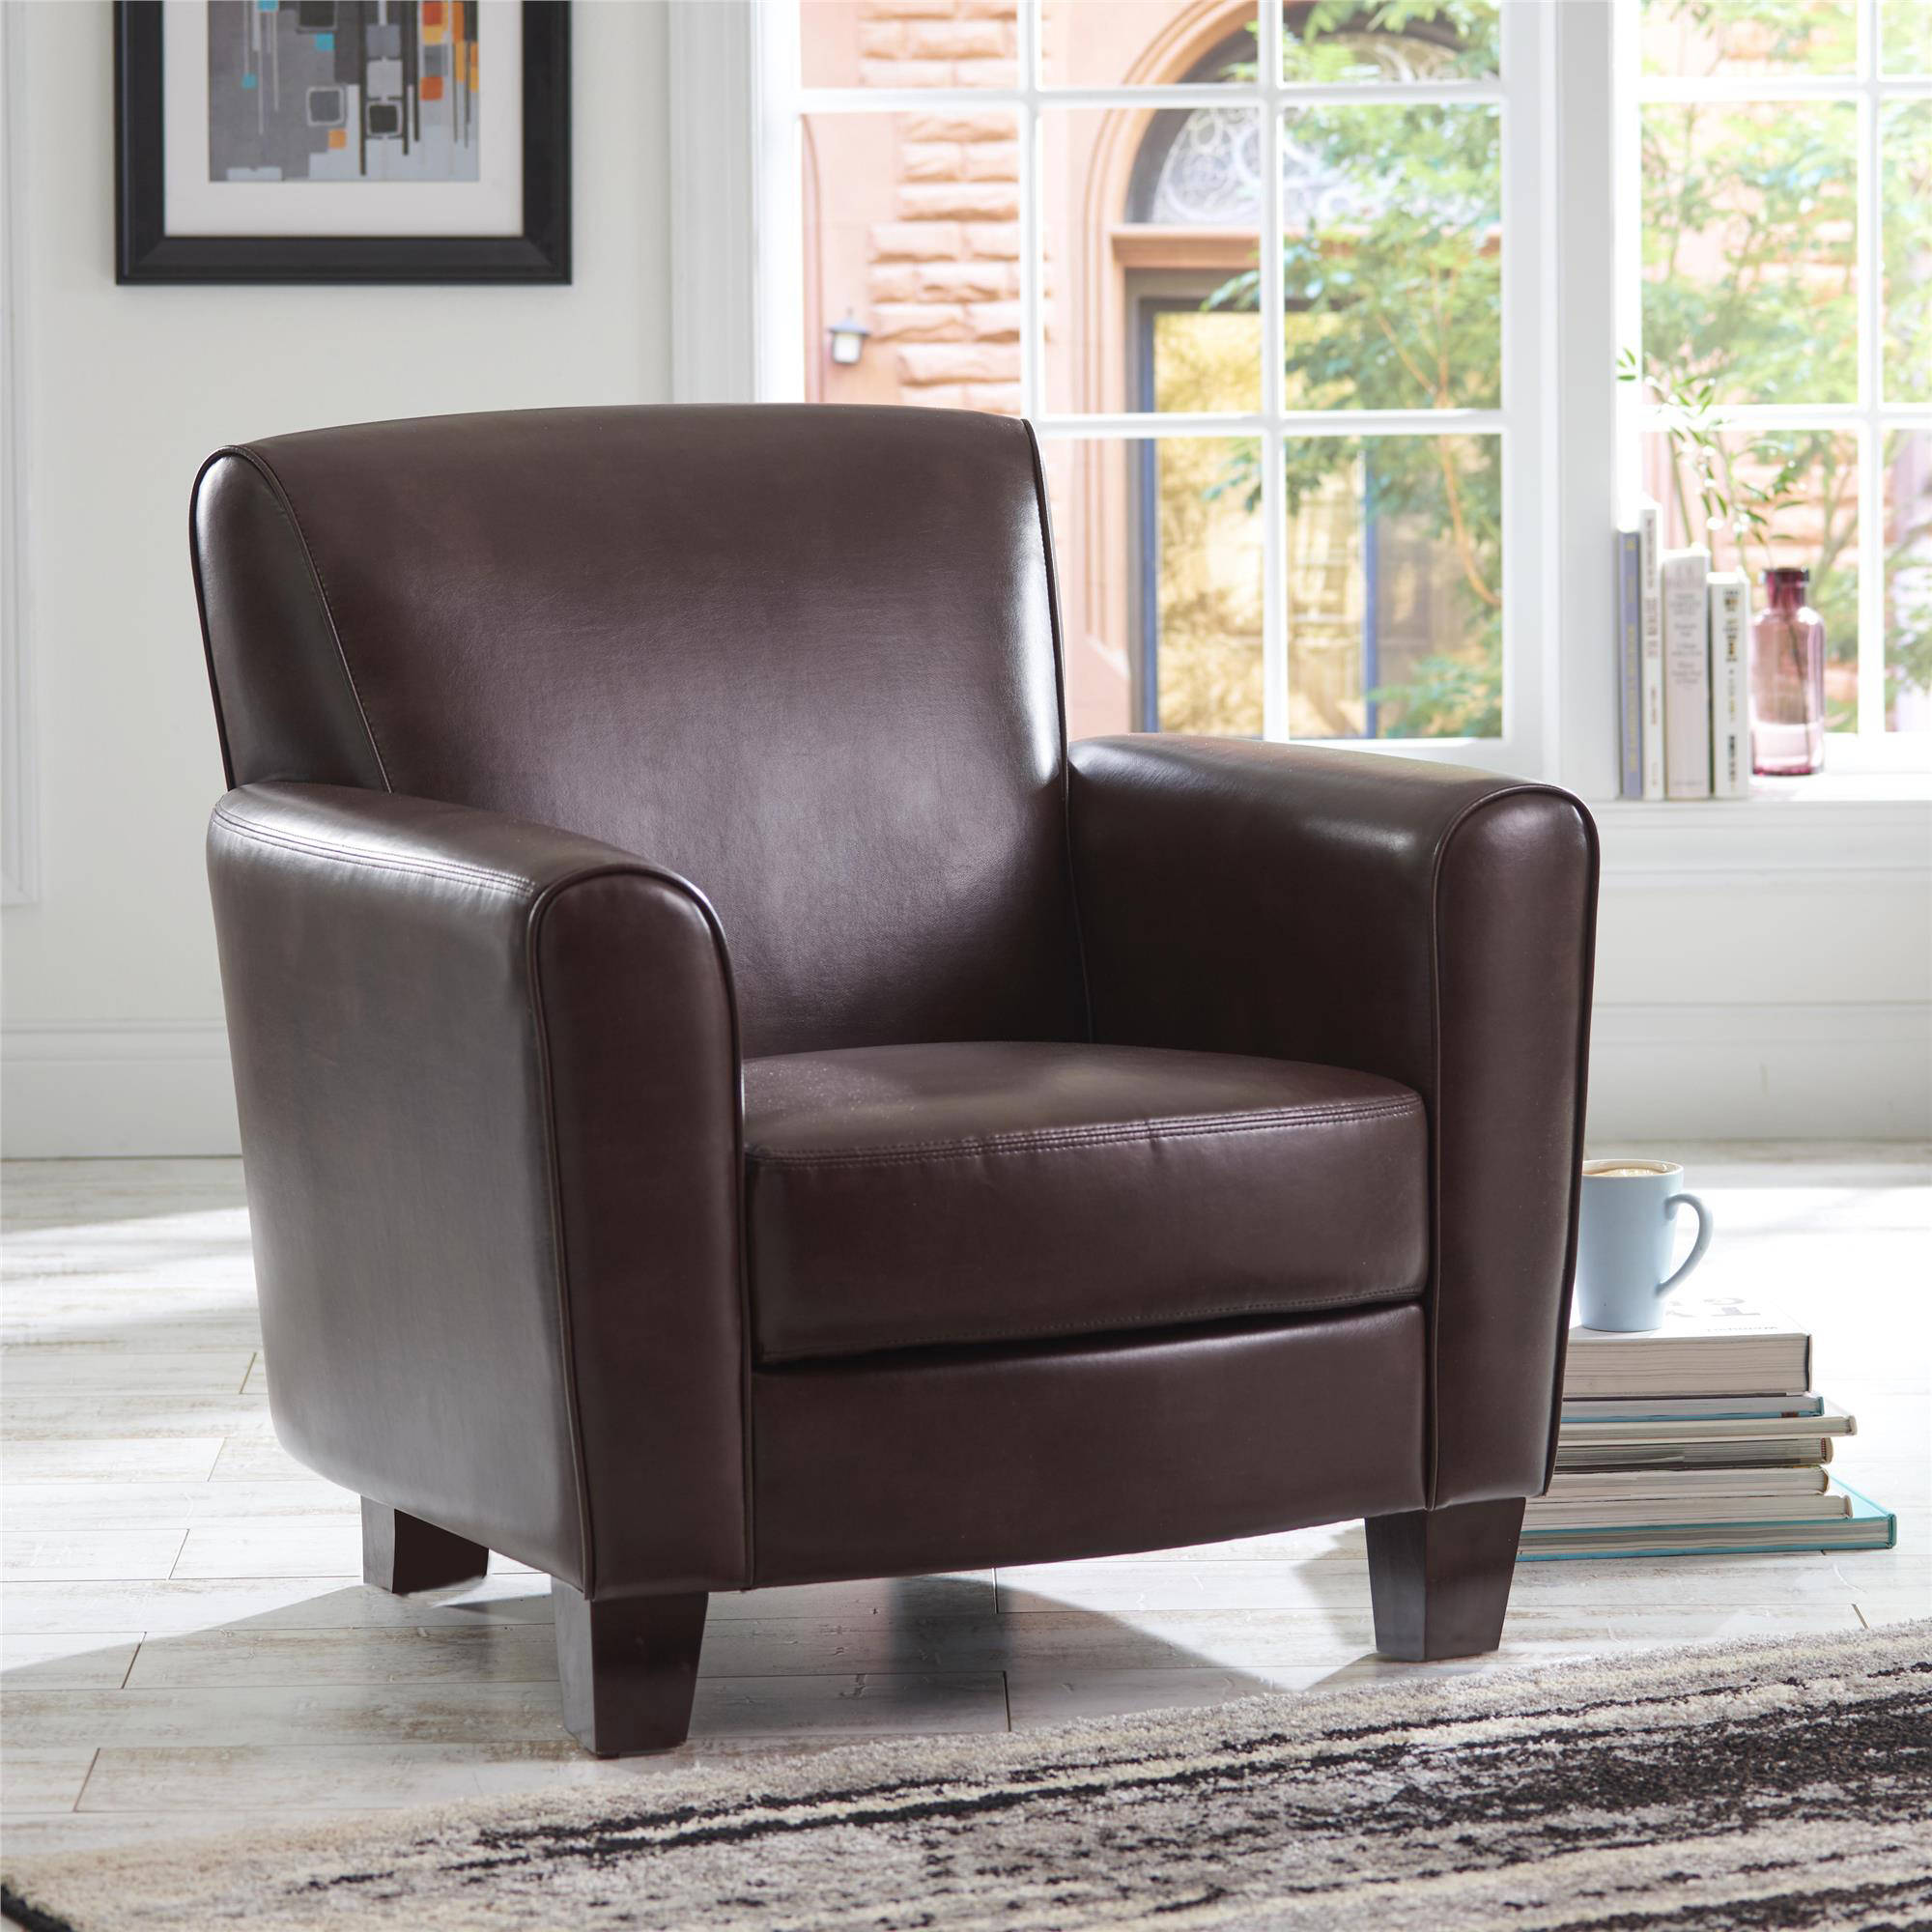 Better Homes and Gardens Ellis Club Chair, Brown by Dorel Asia